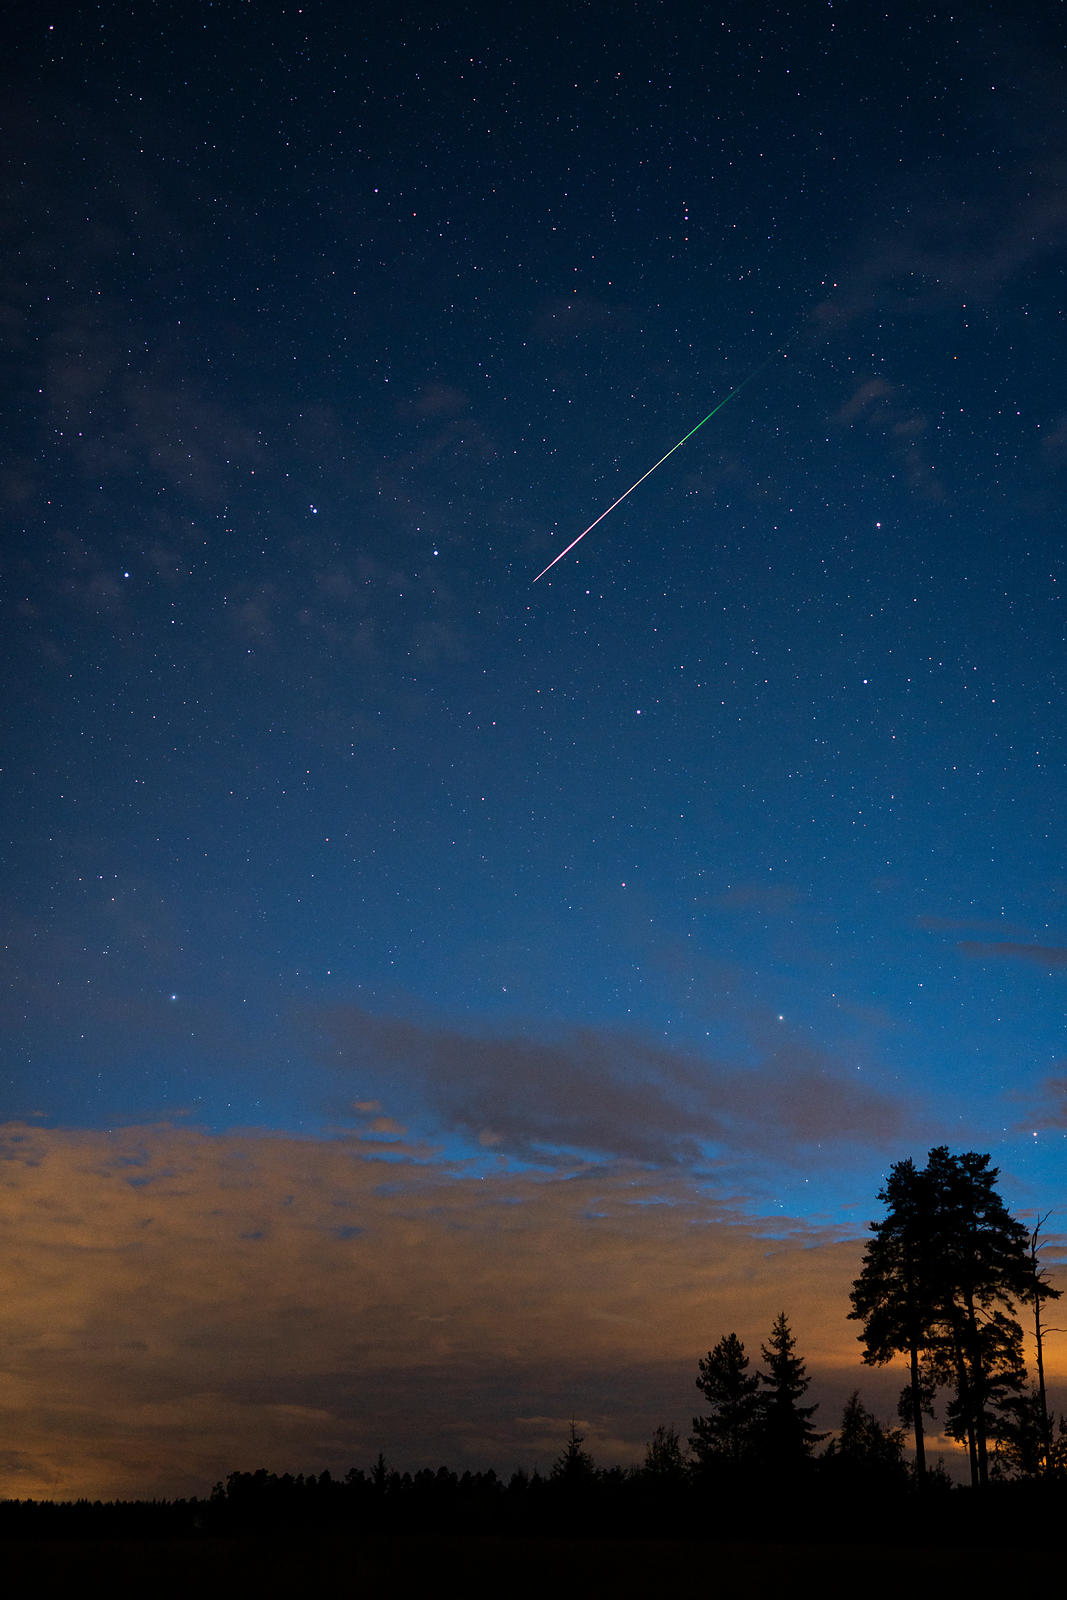 Lone Perseid meteor was seen in the Finnish countryside during the annual Perseid meteor shower on August 13 2018.